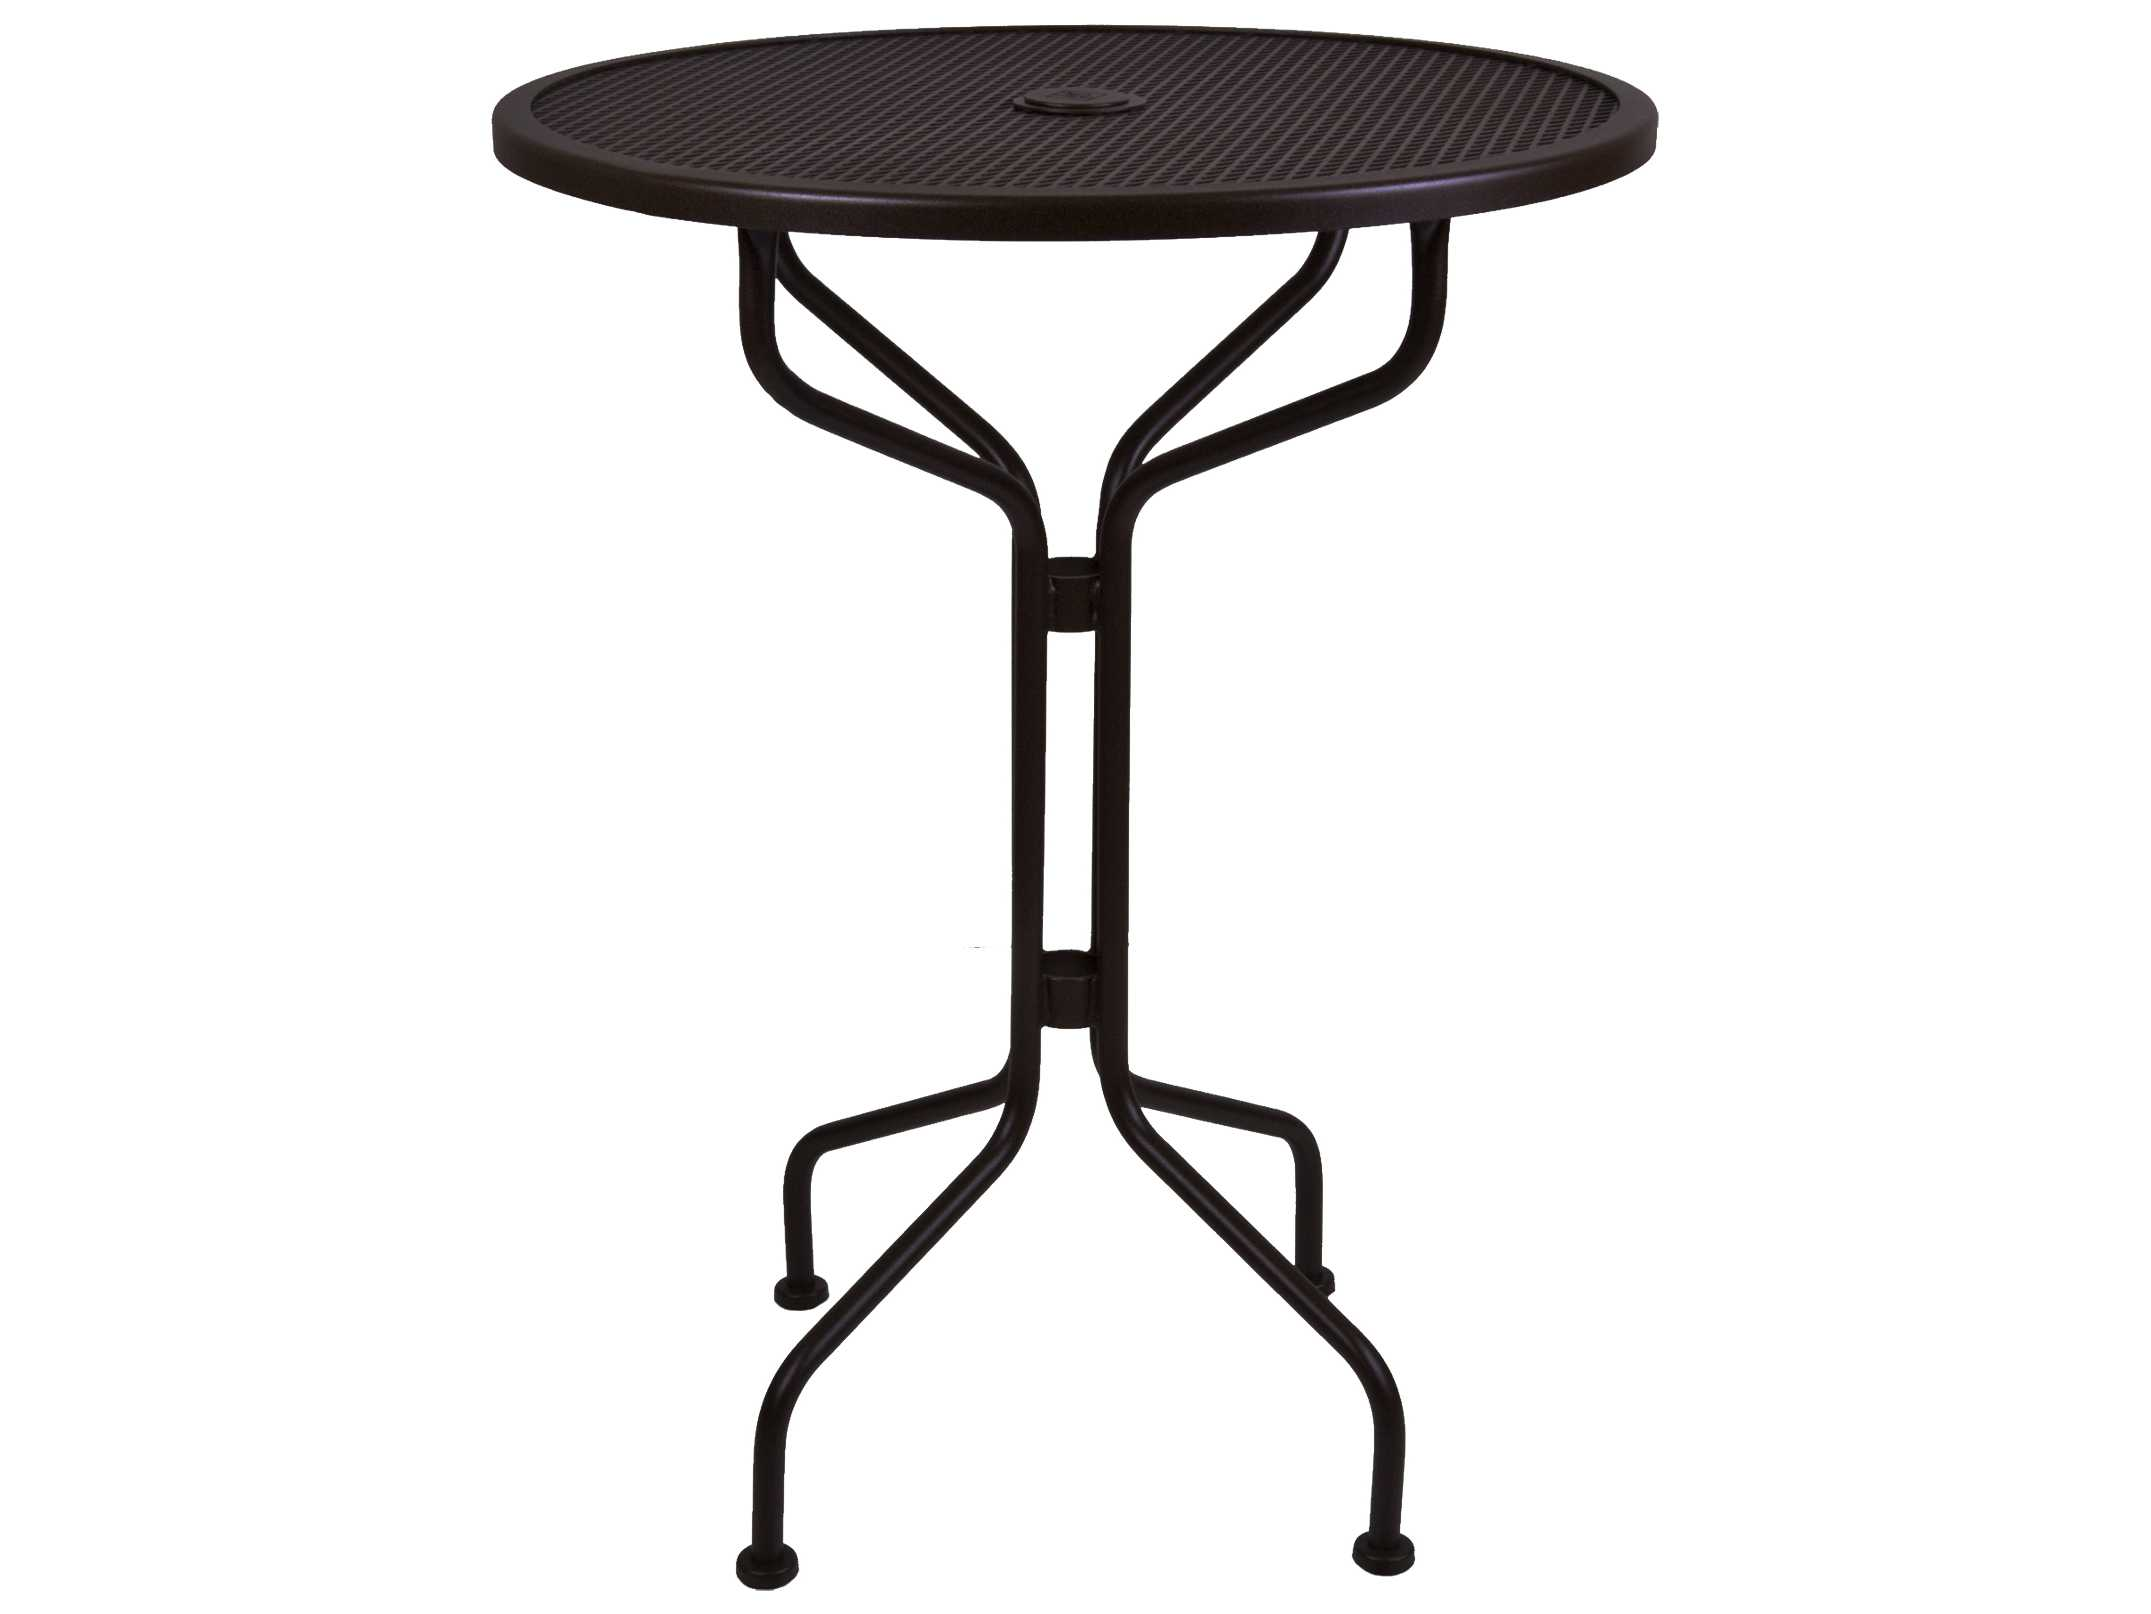 OW Lee Mesh Wrought Iron 30 Round Bar Table